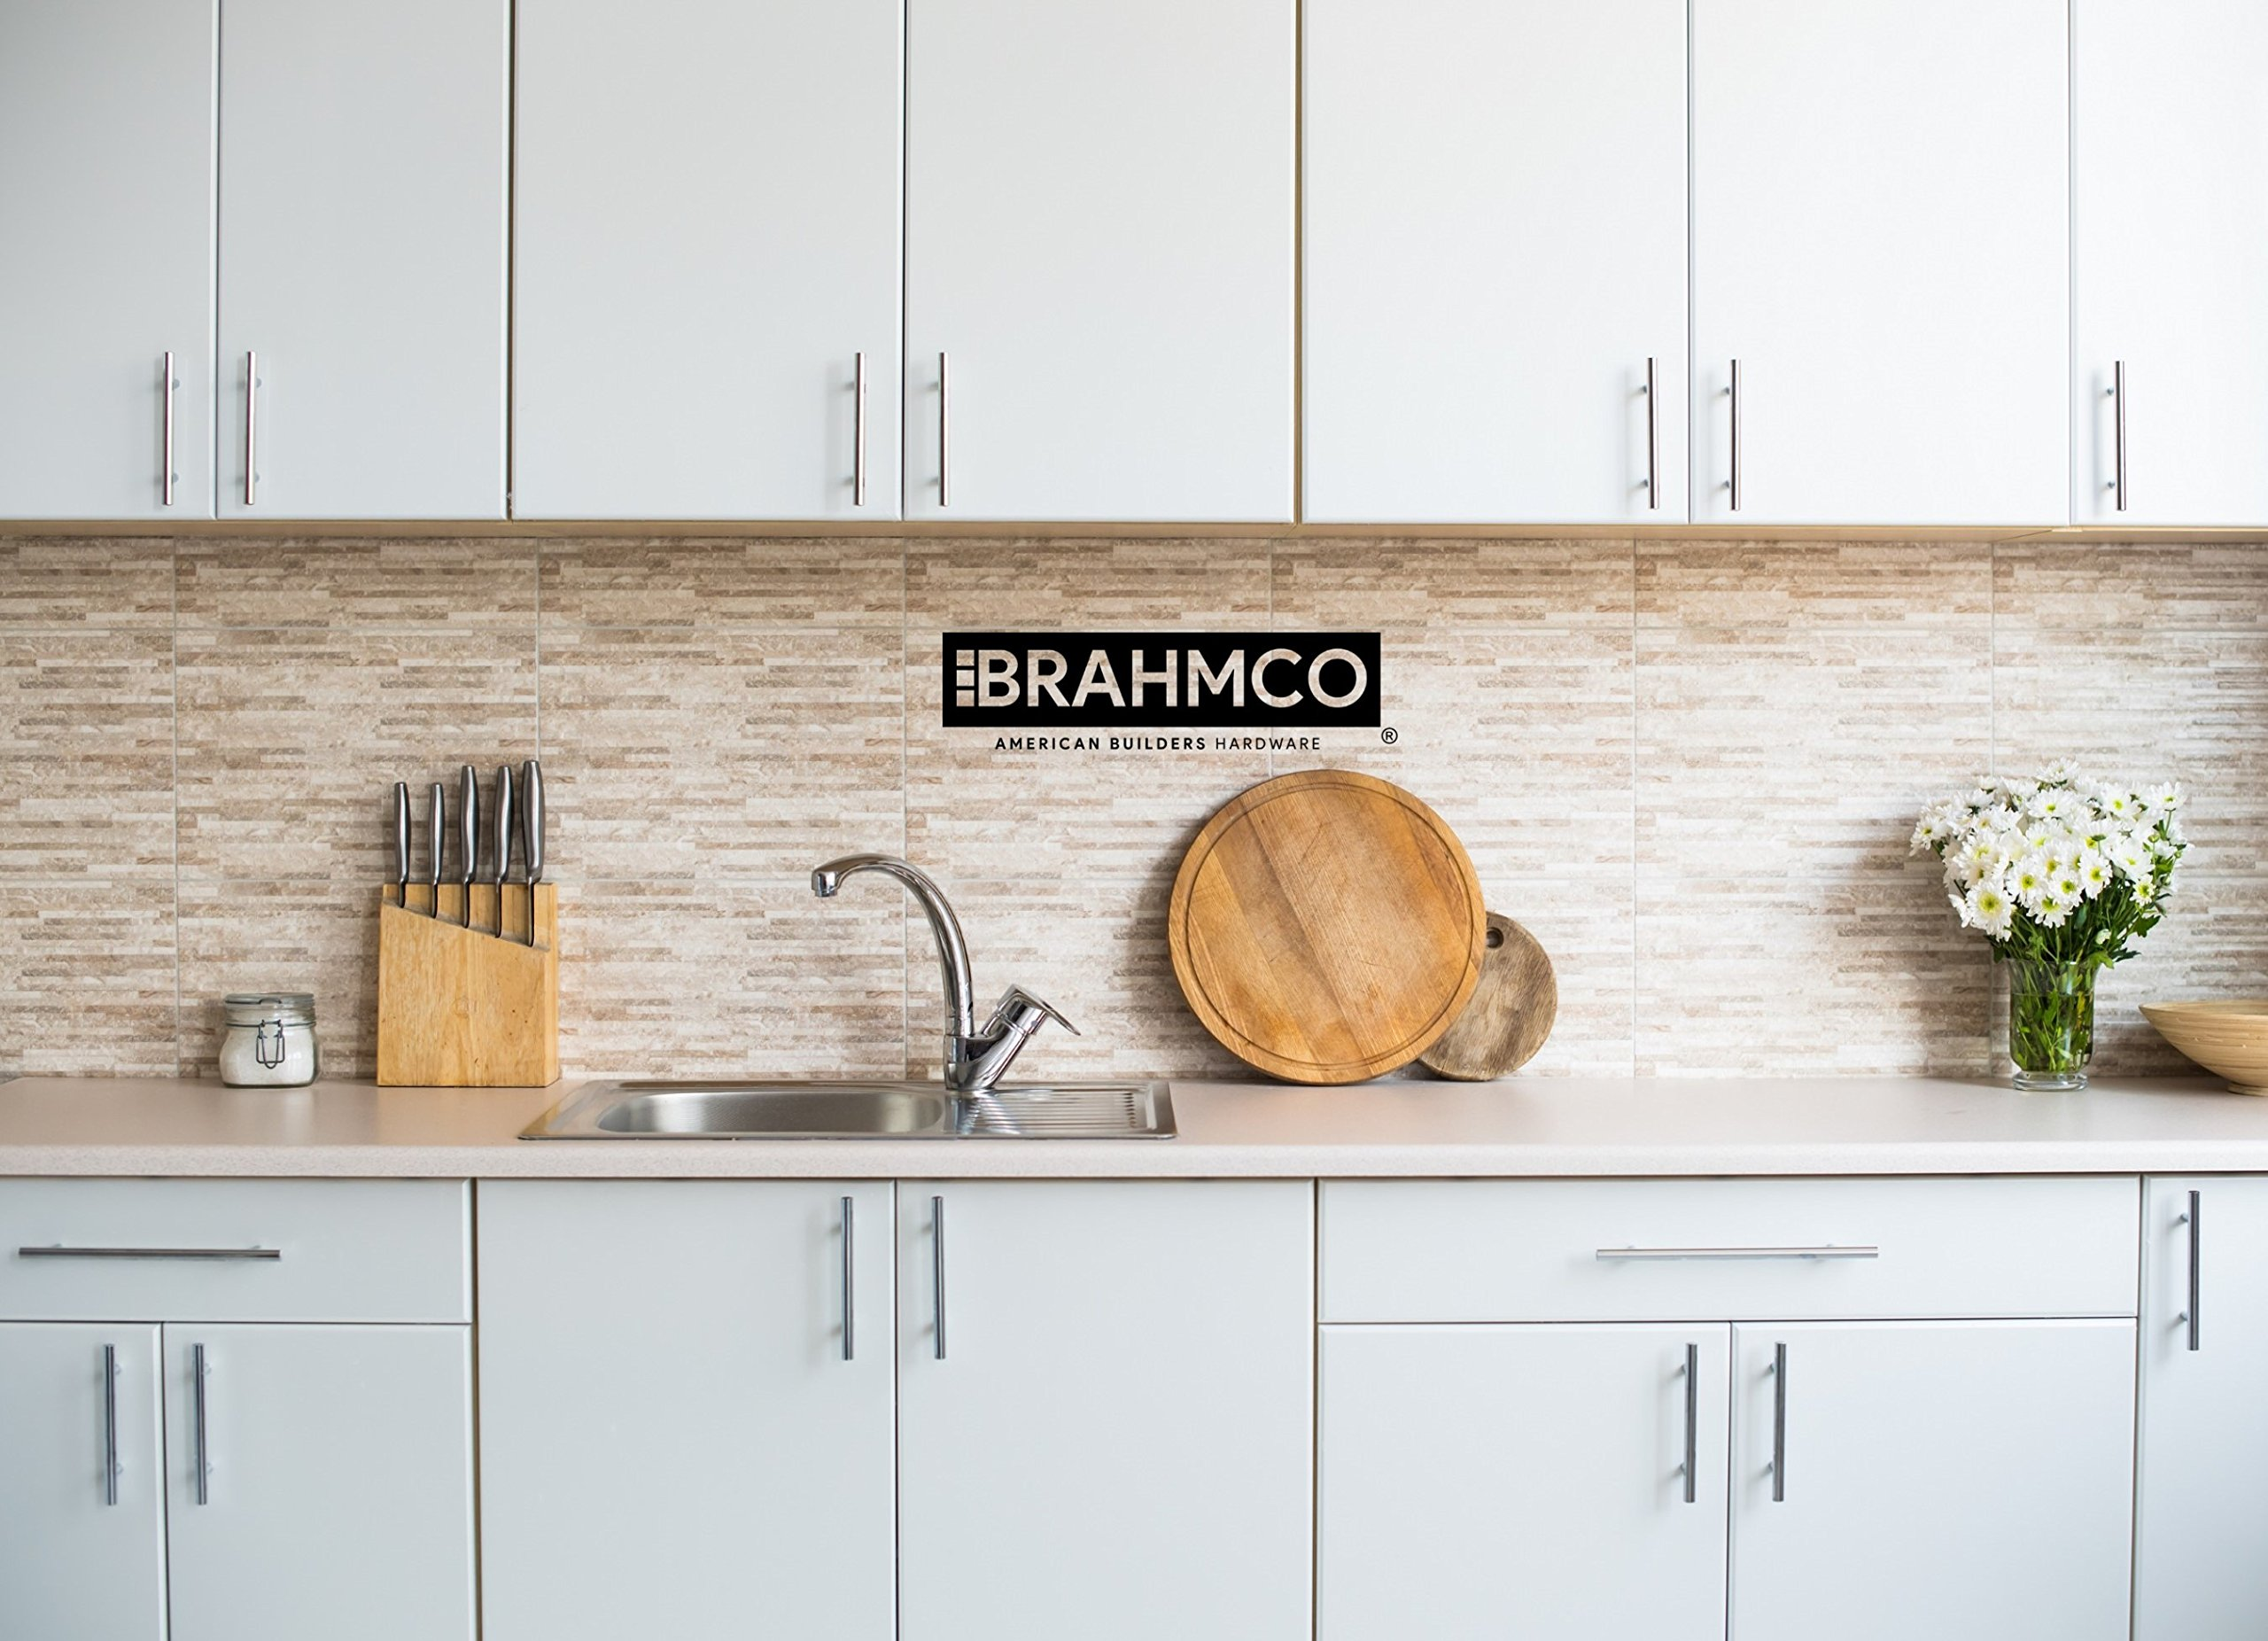 30 Pack | 5'' Stainless Steel T Bar Cabinet Pulls: 3 Inch Hole Spacing | Brahmco 180-5 | Modern Euro Style Brushed Satin Nickel Finish Kitchen Cabinet Handles Hardware/Drawer by Brahmco (Image #10)